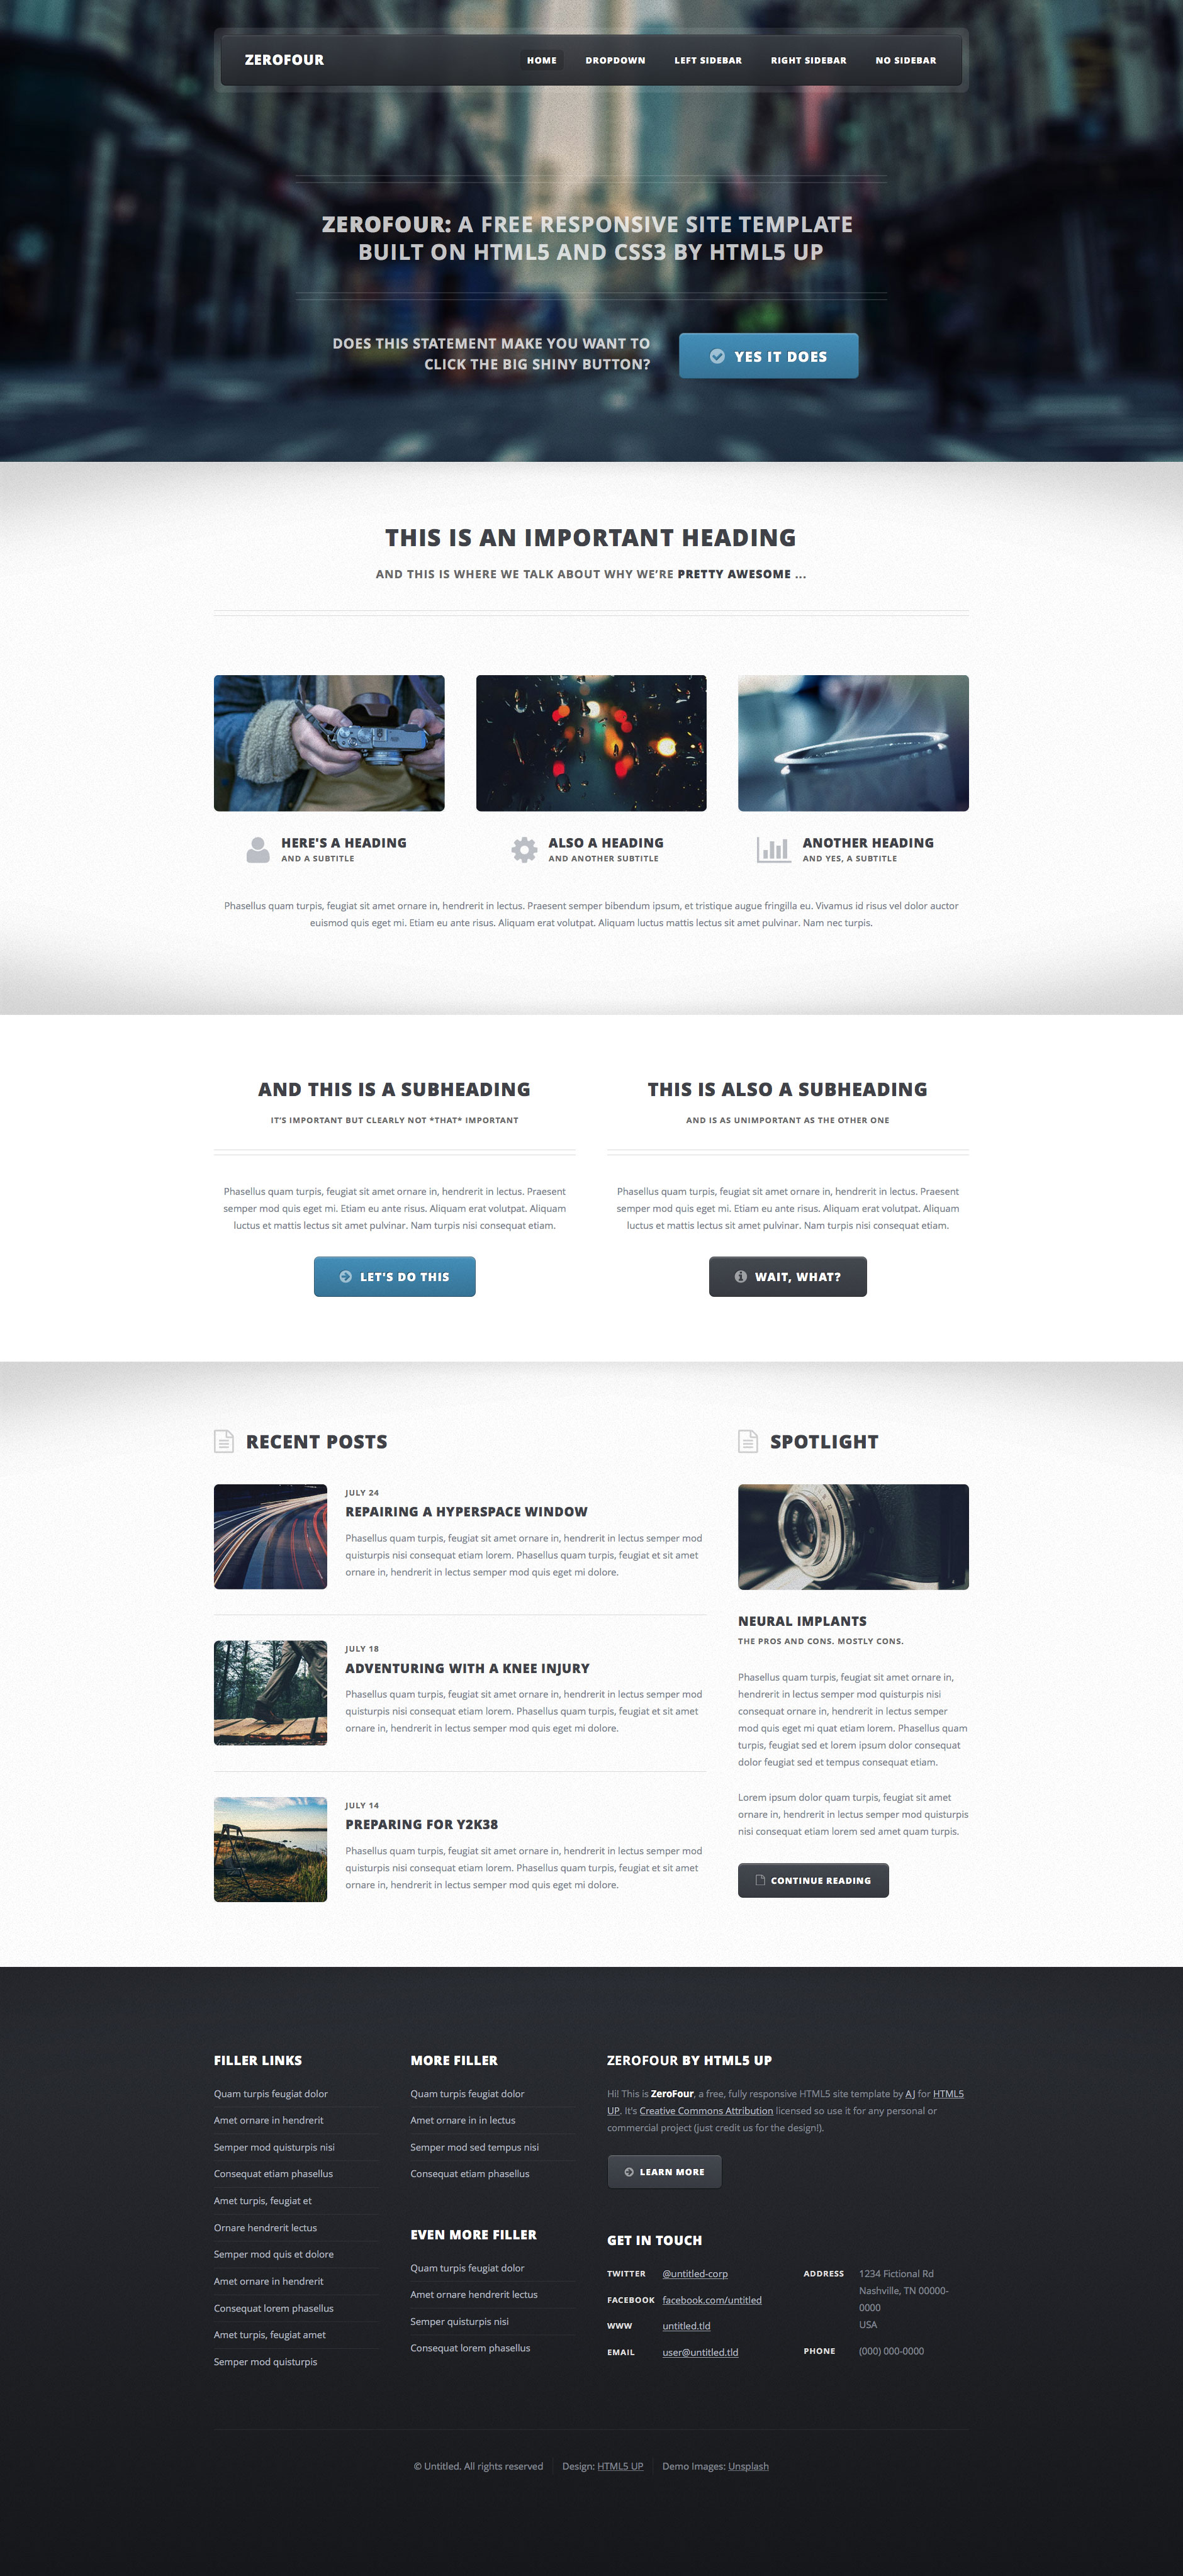 ZeroFour is a free, fully responsive retina ready HTML5 site template. It is a lightweight and fast loading template, suitable for personal projects.